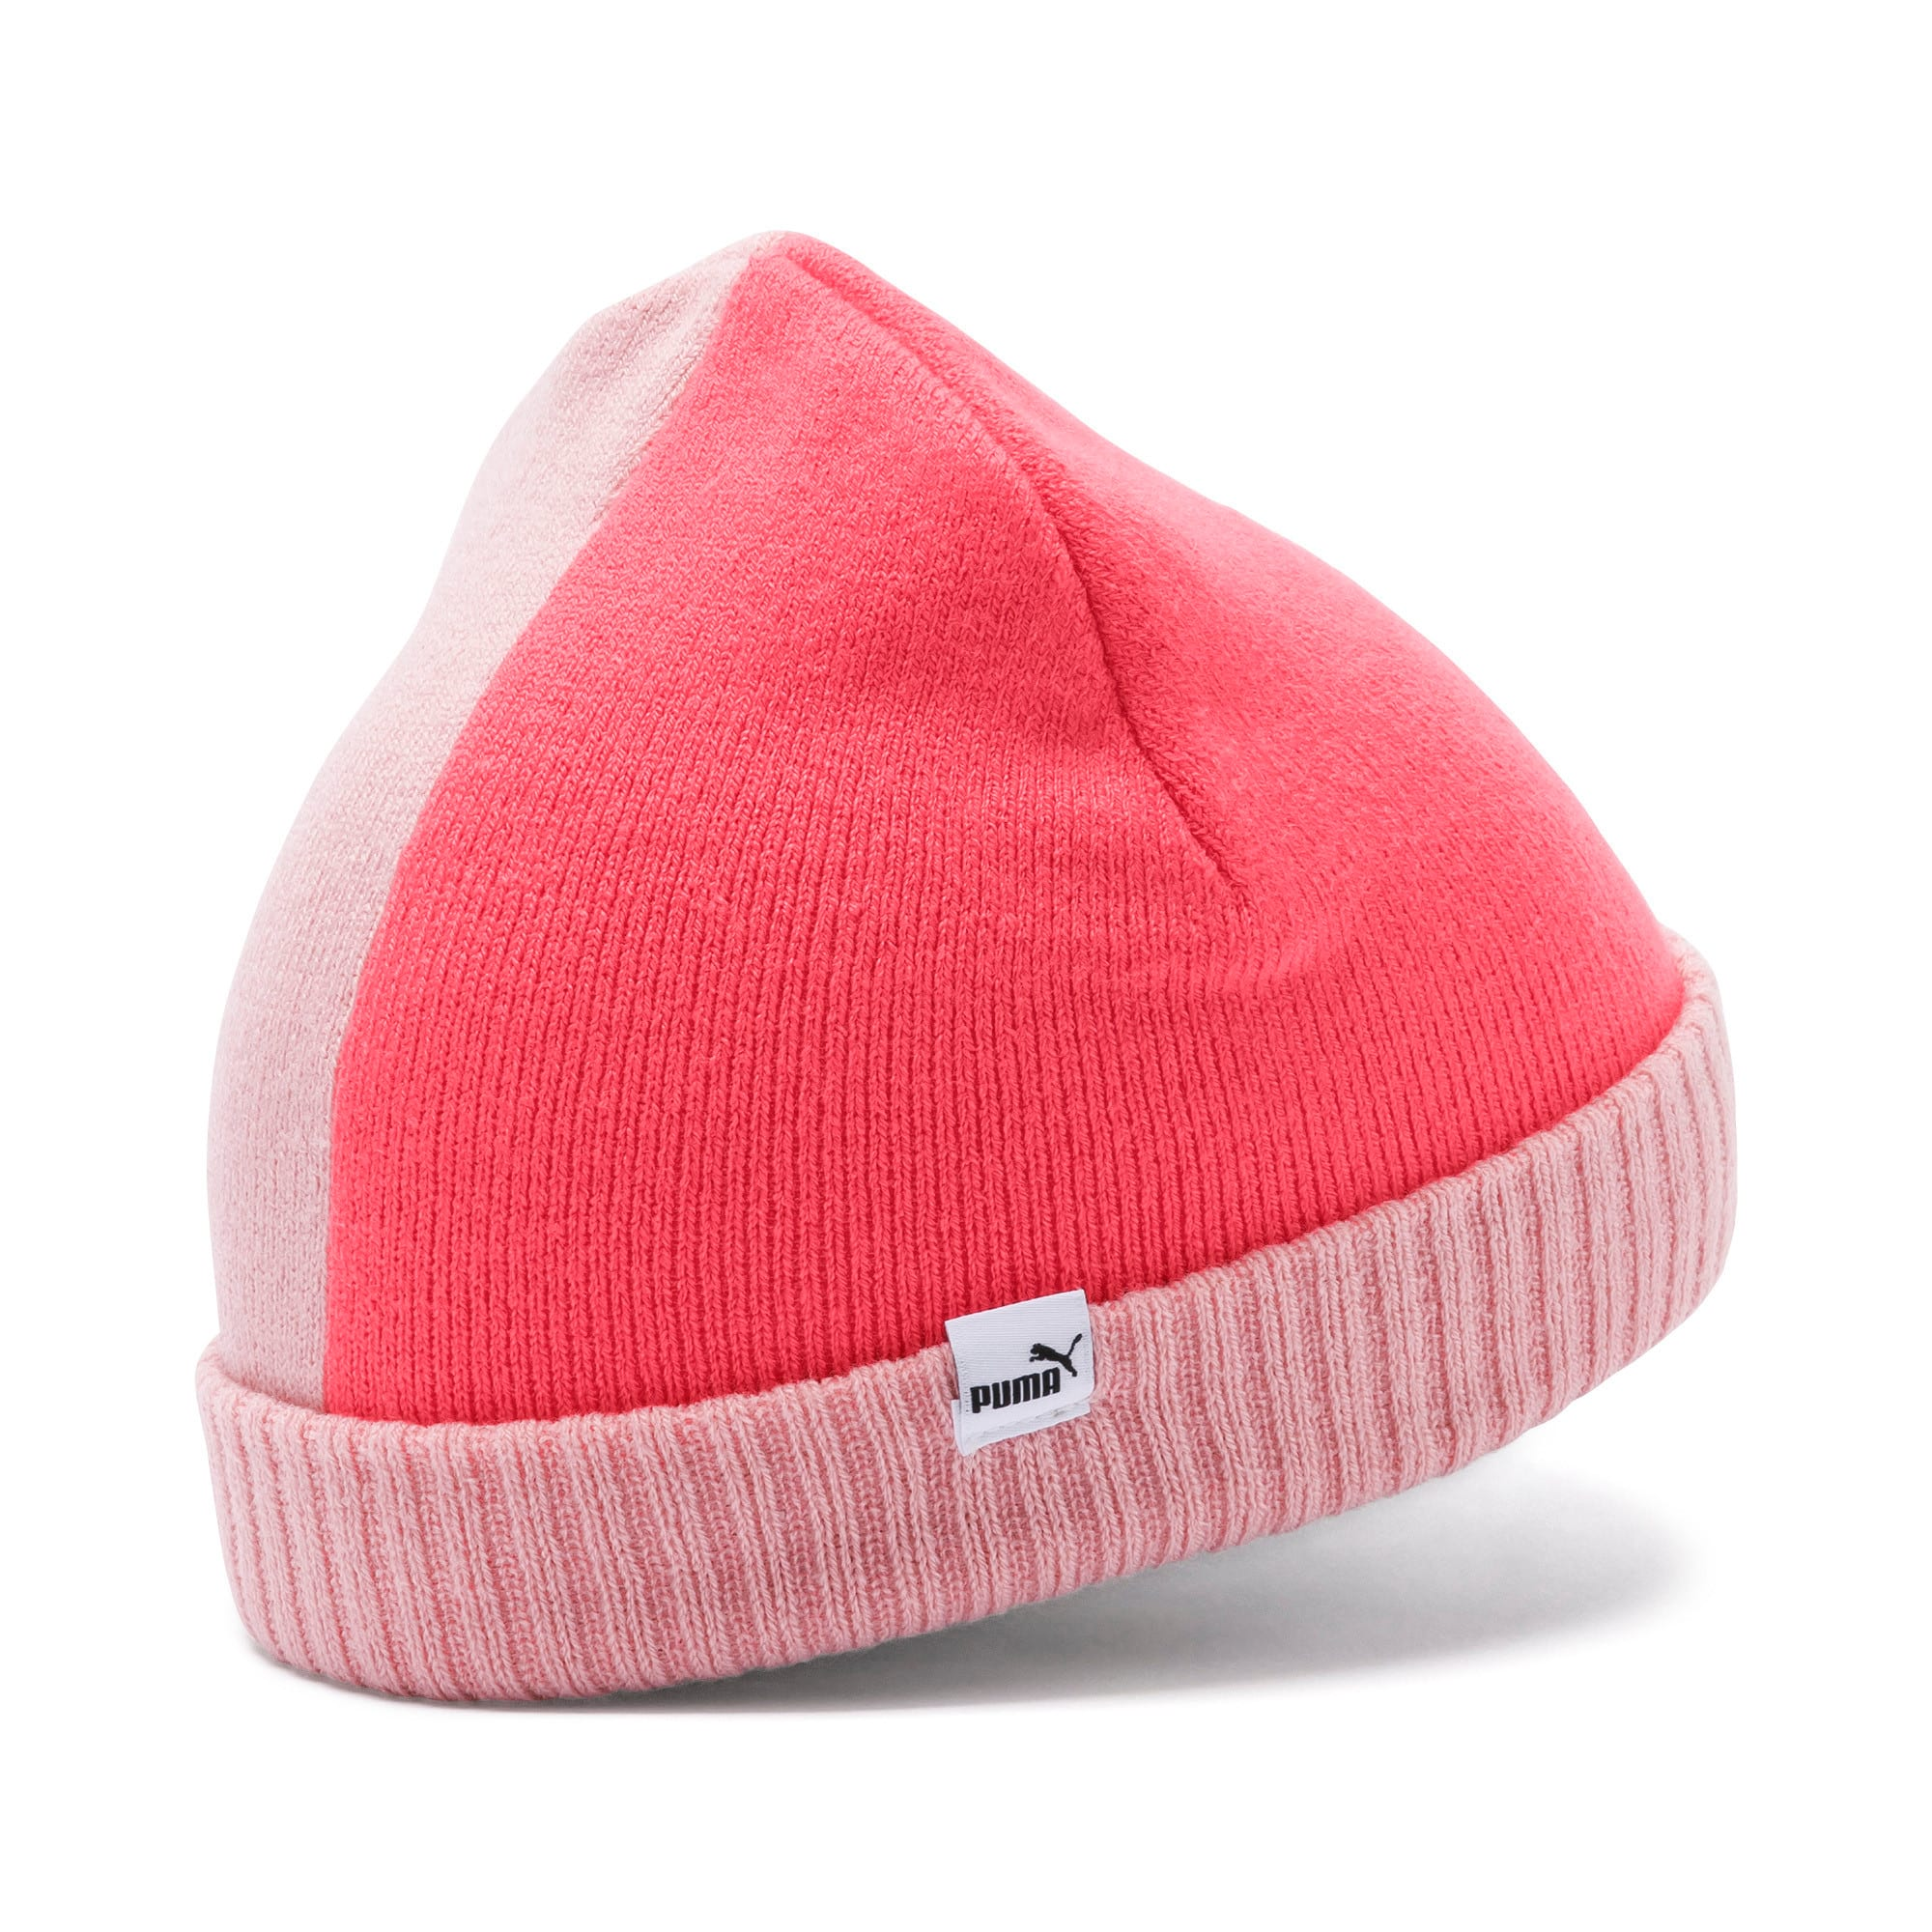 Minicats Kids' Beanie, Bridal Rose-Calypso Coral, large